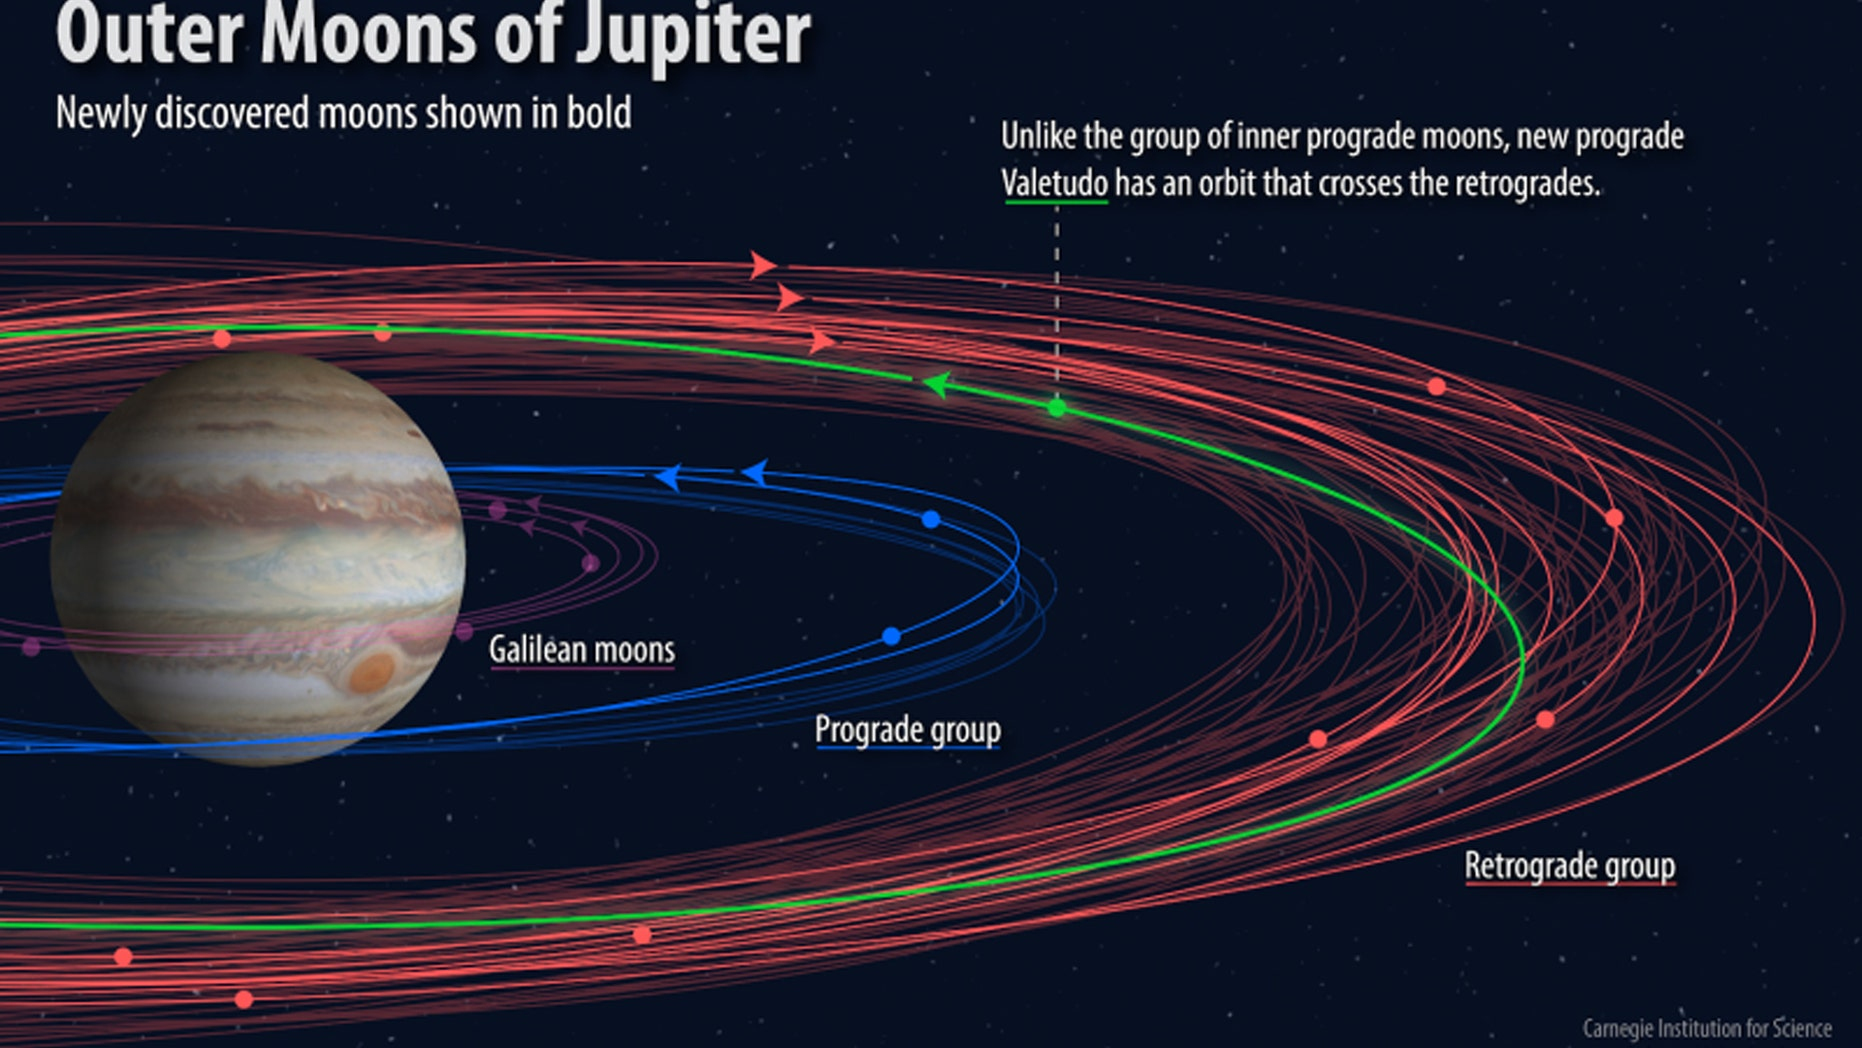 "This image shows the different groupings of moons orbiting Jupiter, with the newly discovered moons displayed in bold. The ""oddball"" moon, known as Valetudo, can be seen in green in a prograde orbit that crosses over the retrograde orbits. Credit: Roberto Molar-Candanosa, courtesy of Carnegie Institution for Science."